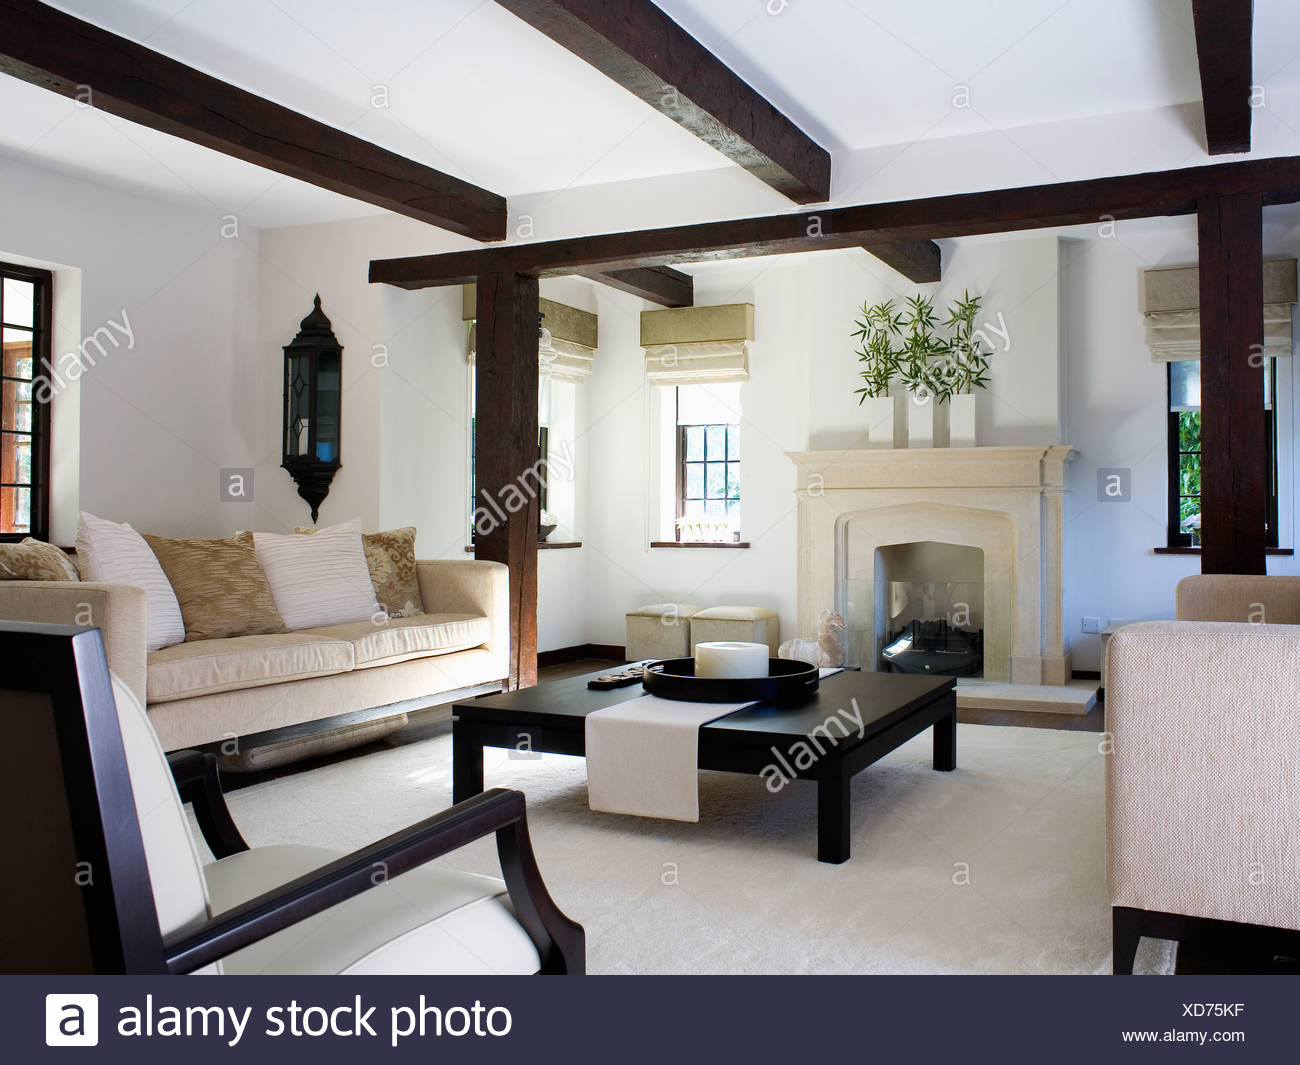 Canapé Beige Et Grand Café Noir Blanc Table In Modern Cottage Salon Avec Cheminée En Pierre Et Tapis Blanc Photo Stock Alamy